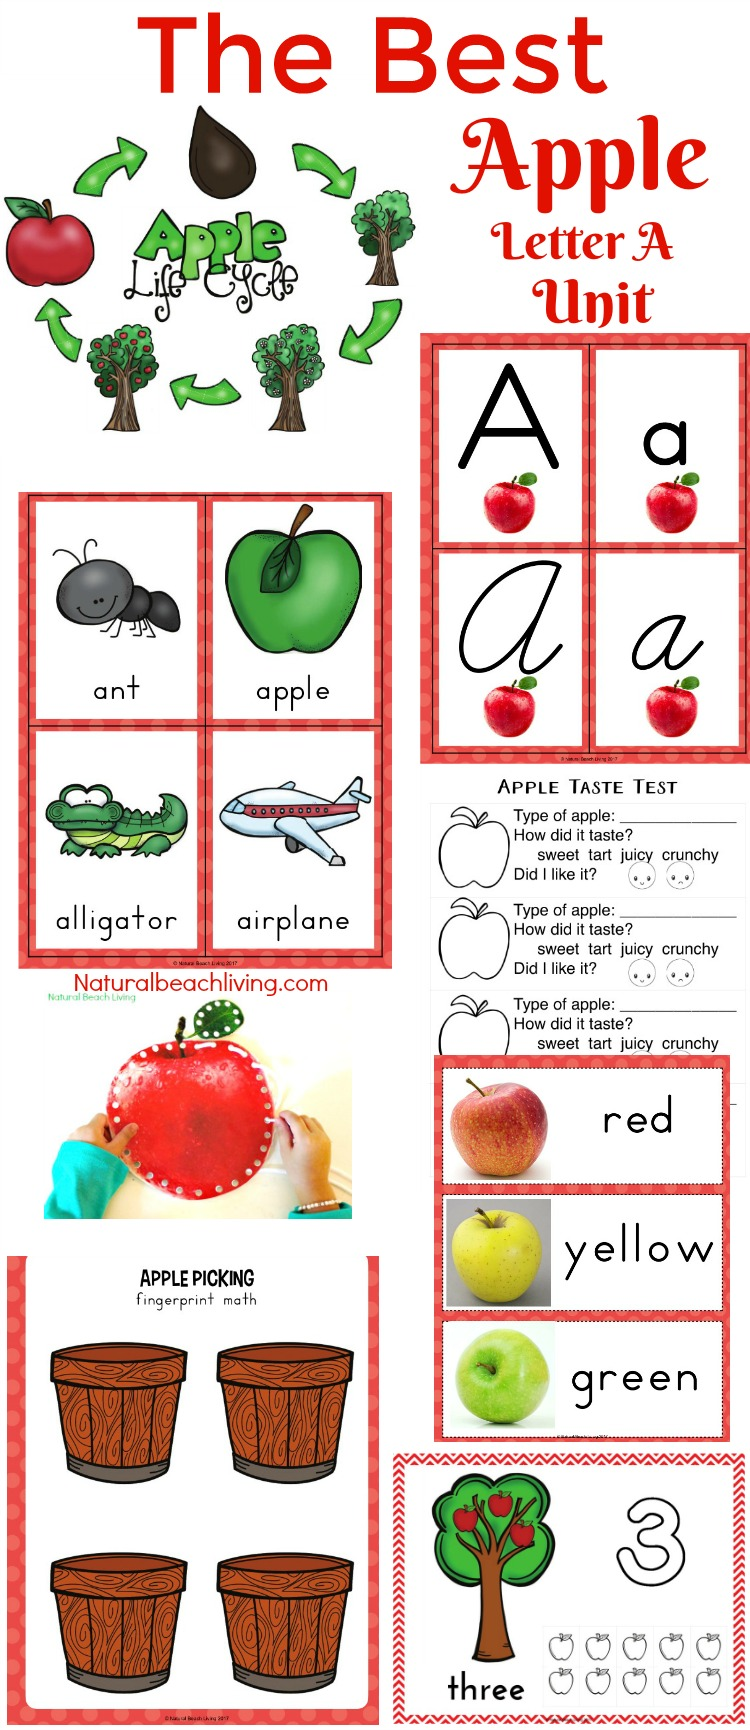 50+ Apple crafts for Preschoolers, paper apple crafts, apple crafts for kindergarten, Fall is perfect for Apple Crafts for kids. Whether you are looking for easy toddler apple crafts or fun apple crafts for themed learning with preschoolers and kindergarten, these apple projects will give you great ideas for kids crafting all season long. There are so many different ways to get creative and crafty with apples.